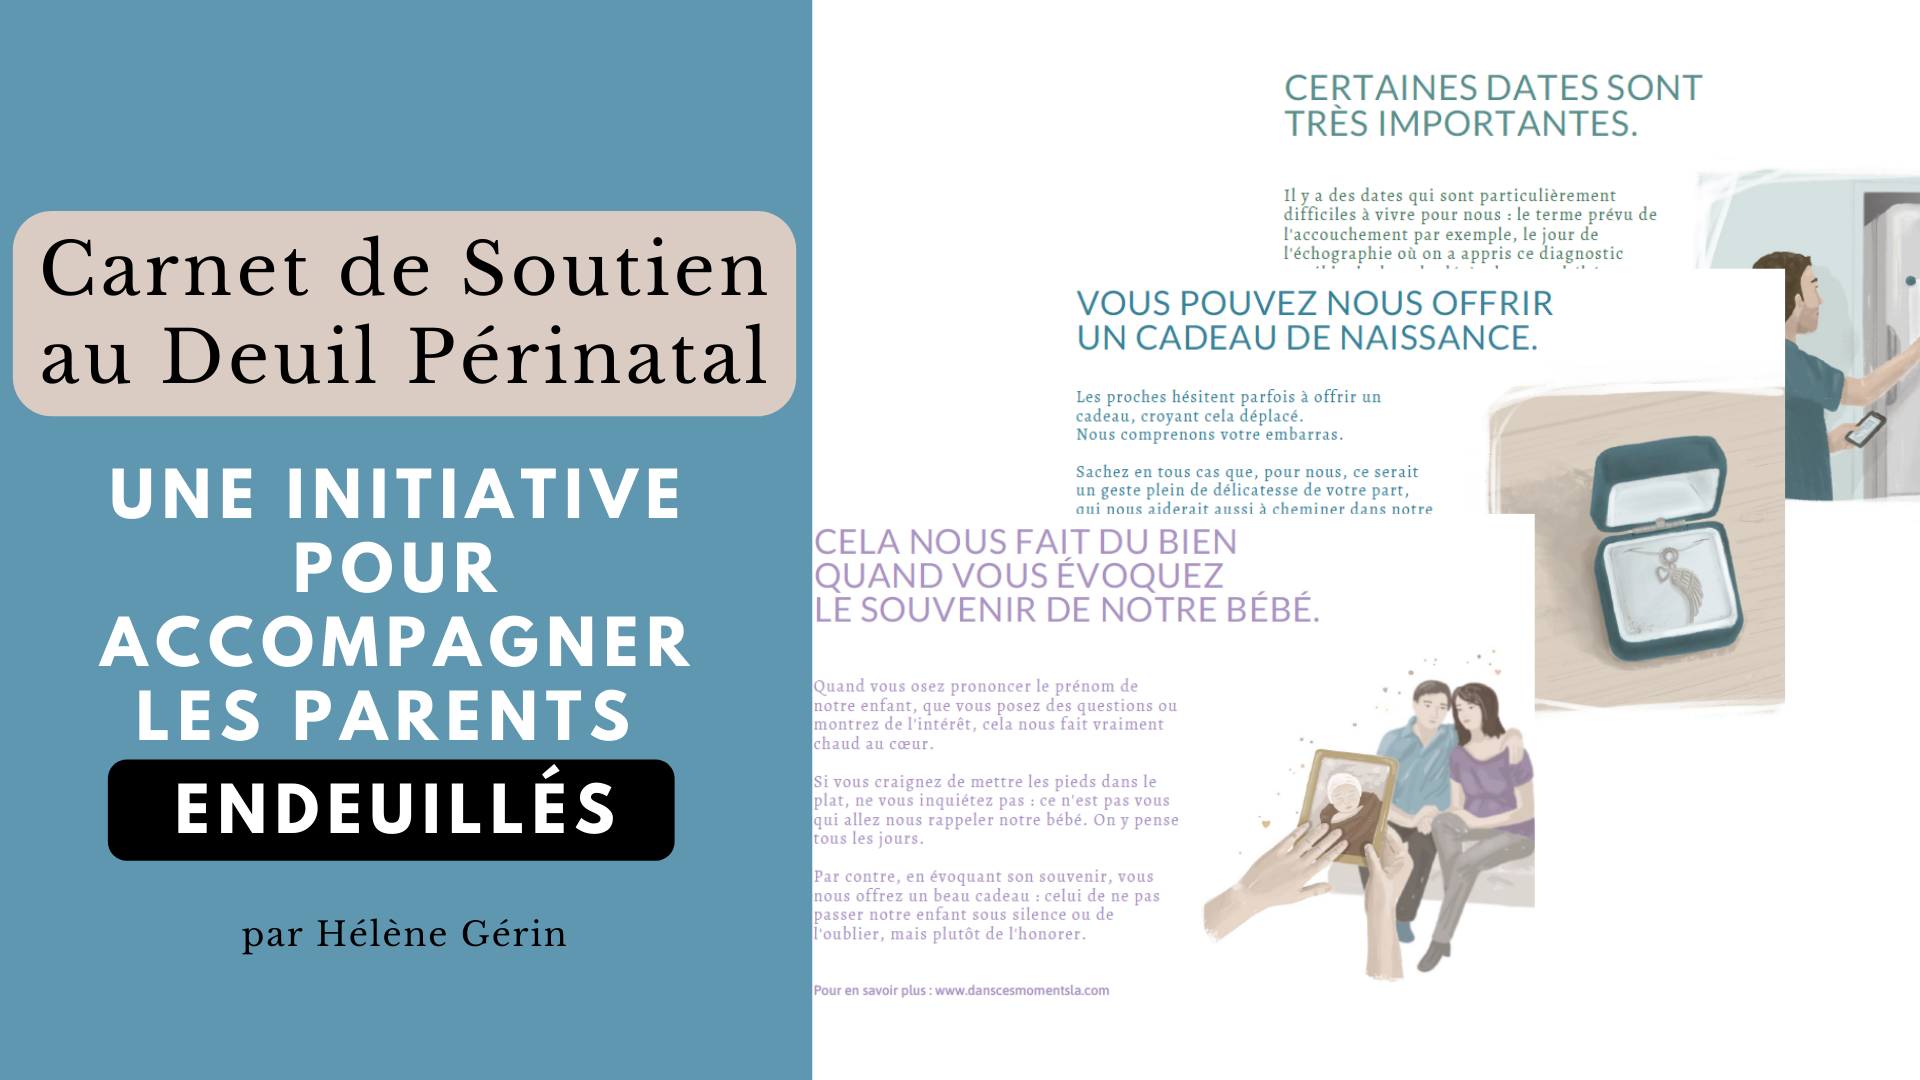 idees-accompagner-deuil-perinatal-parents-endeuilles